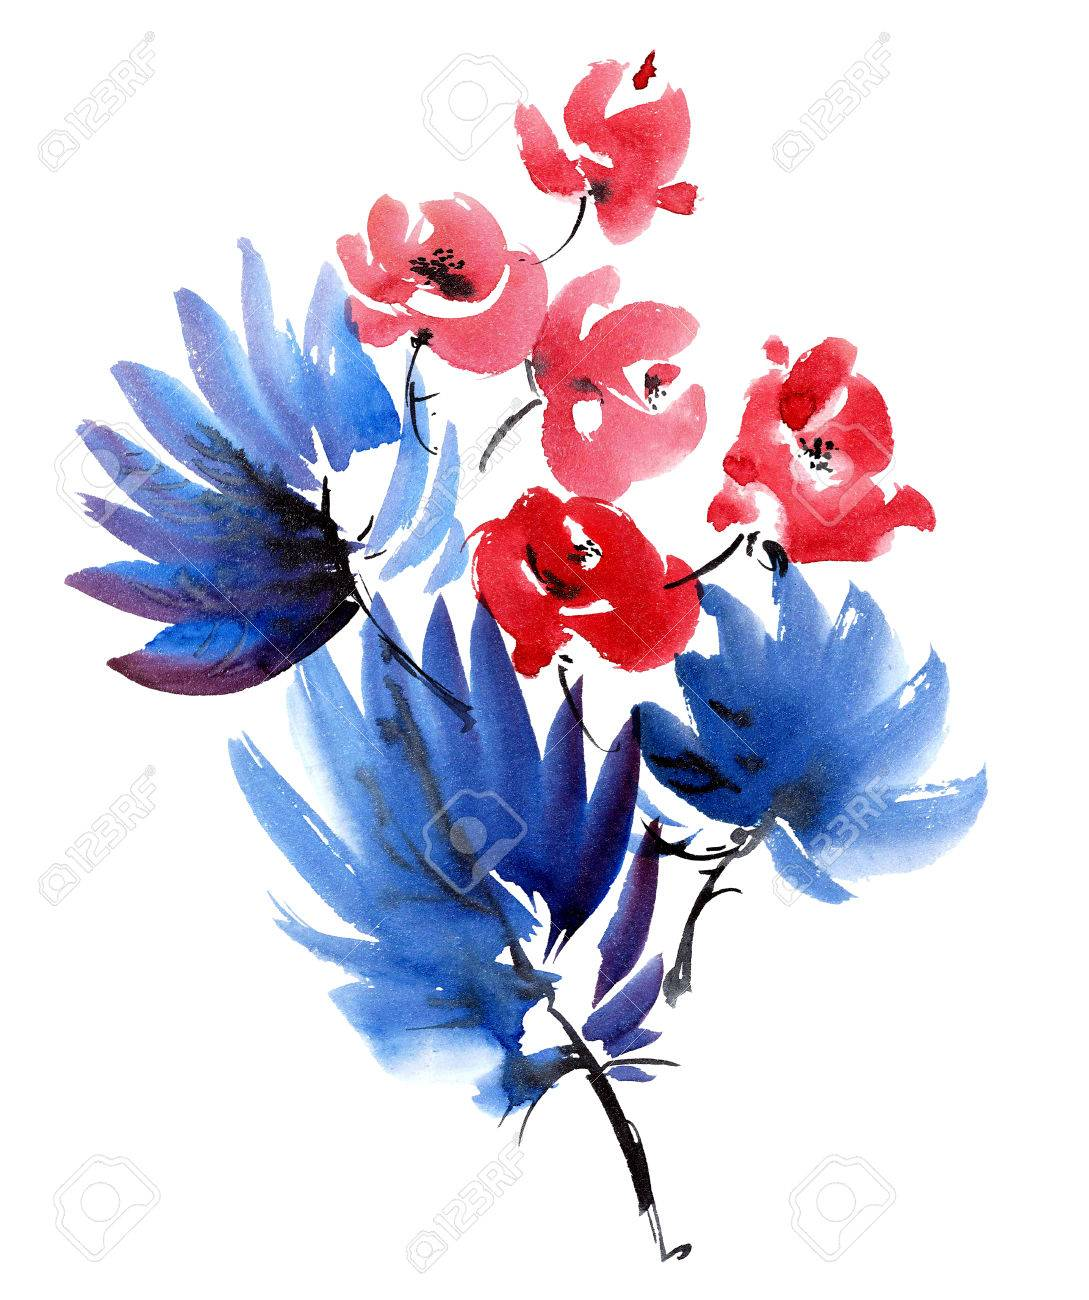 Red Flowers And Dark Blue Leaves Bouquet Watercolor And Ink Stock Photo Picture And Royalty Free Image Image 60186475